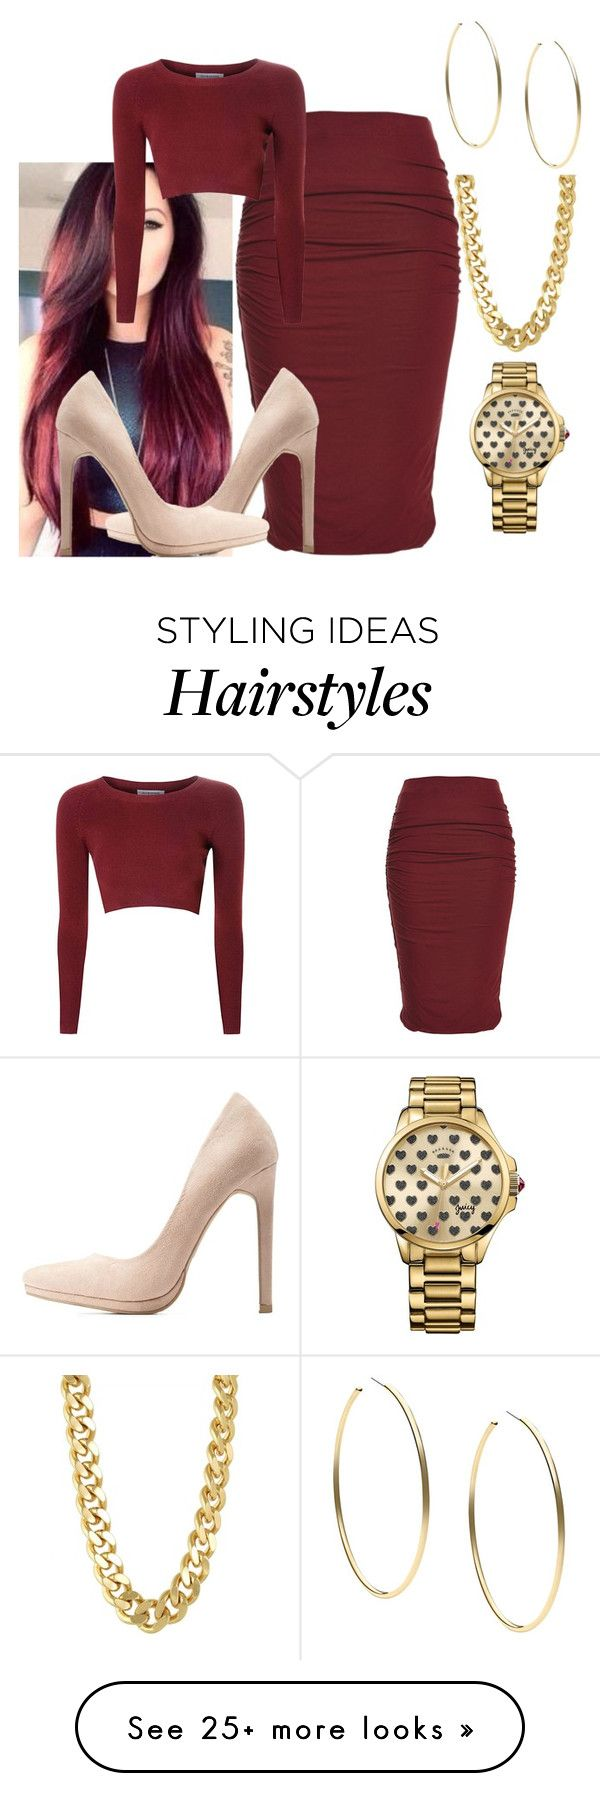 """""""Hair matches the theme"""" by riahh-926 on Polyvore featuring Glamorous, Charlotte Russe, Juicy Couture, CC SKYE and Michael Kors"""